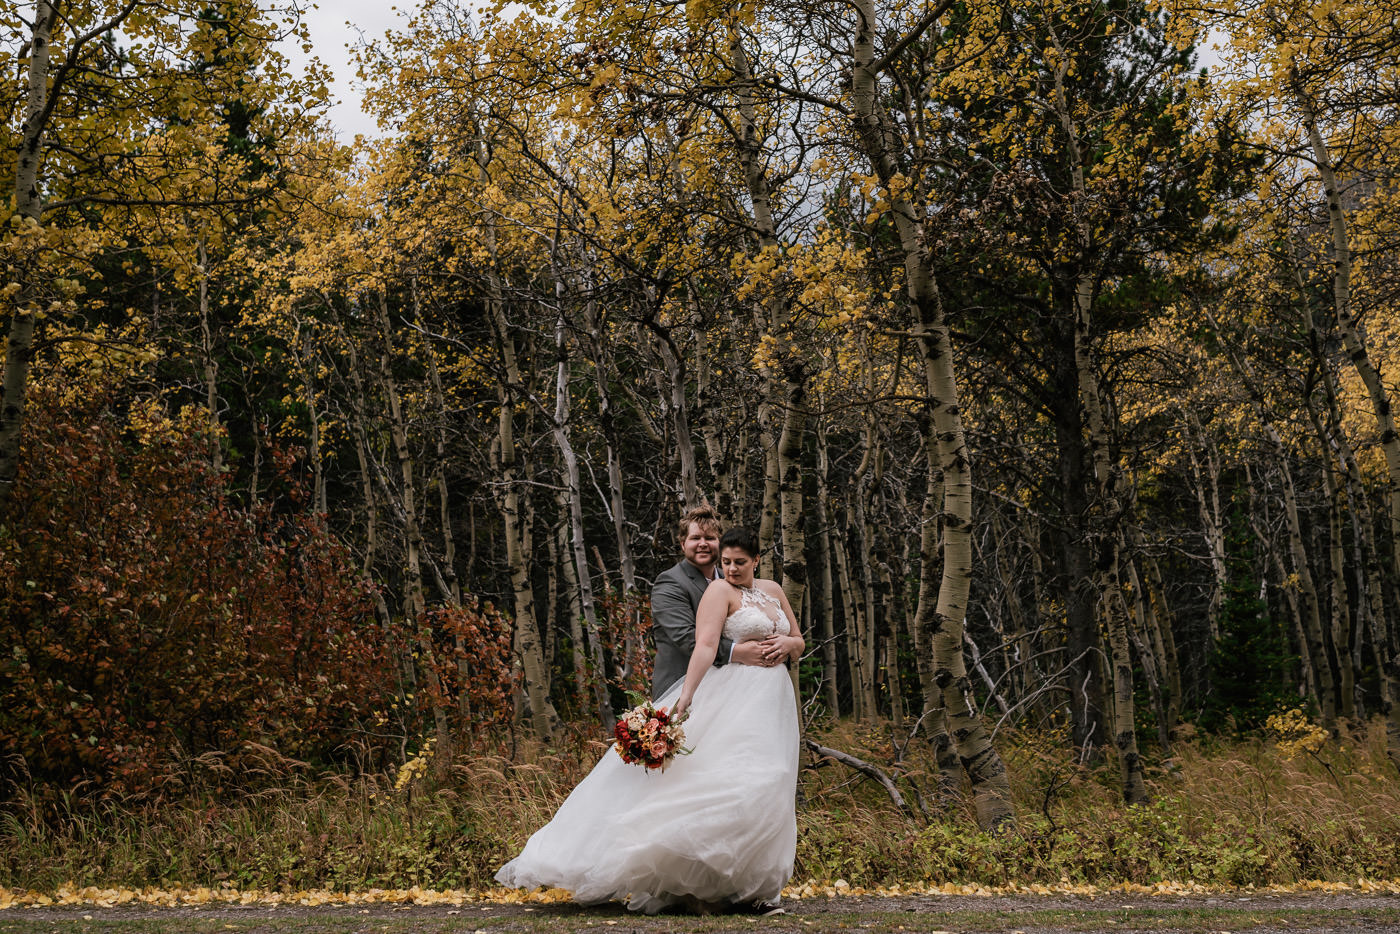 Groom wraps his arm around his bride in front of a birch forest with fall color in Many Glacier.